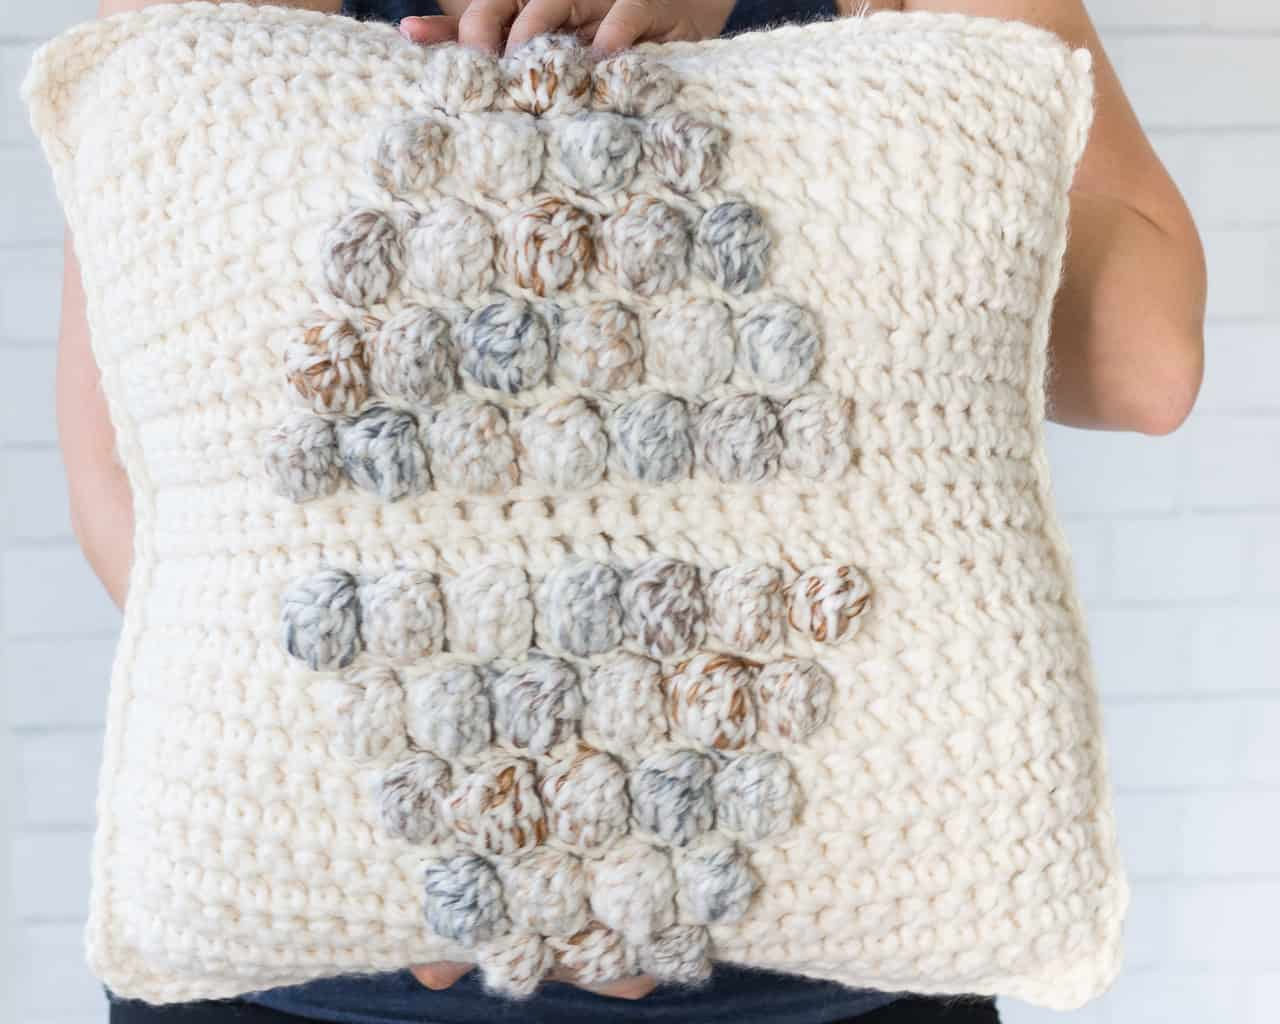 PIllow Cover Crochet Pattern using the Bobble Stitch